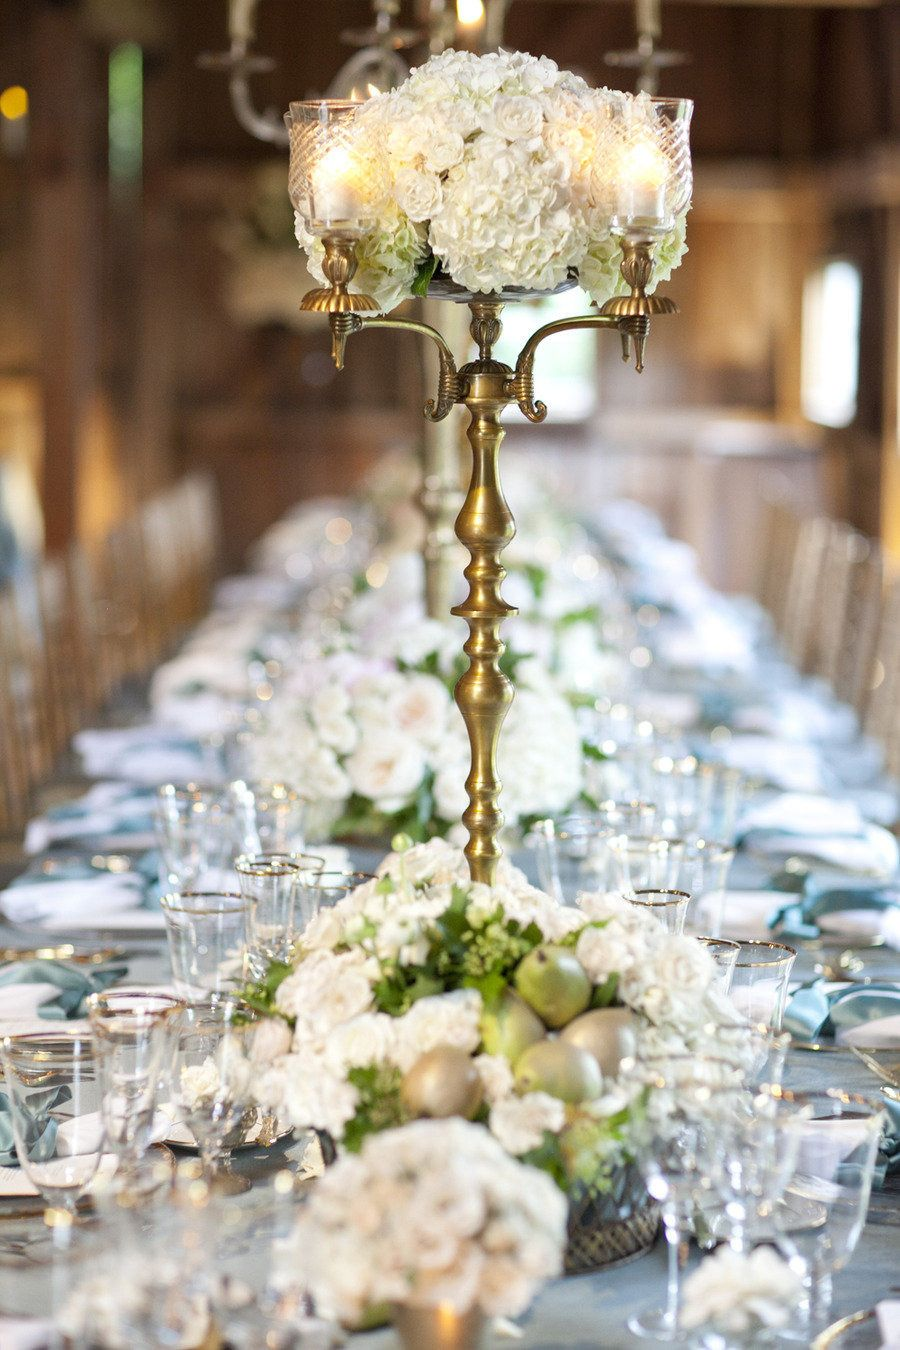 Elegant wedding decoration ideas  Daily Wedding Inspiration Tasteful and Elegant Wedding Reception